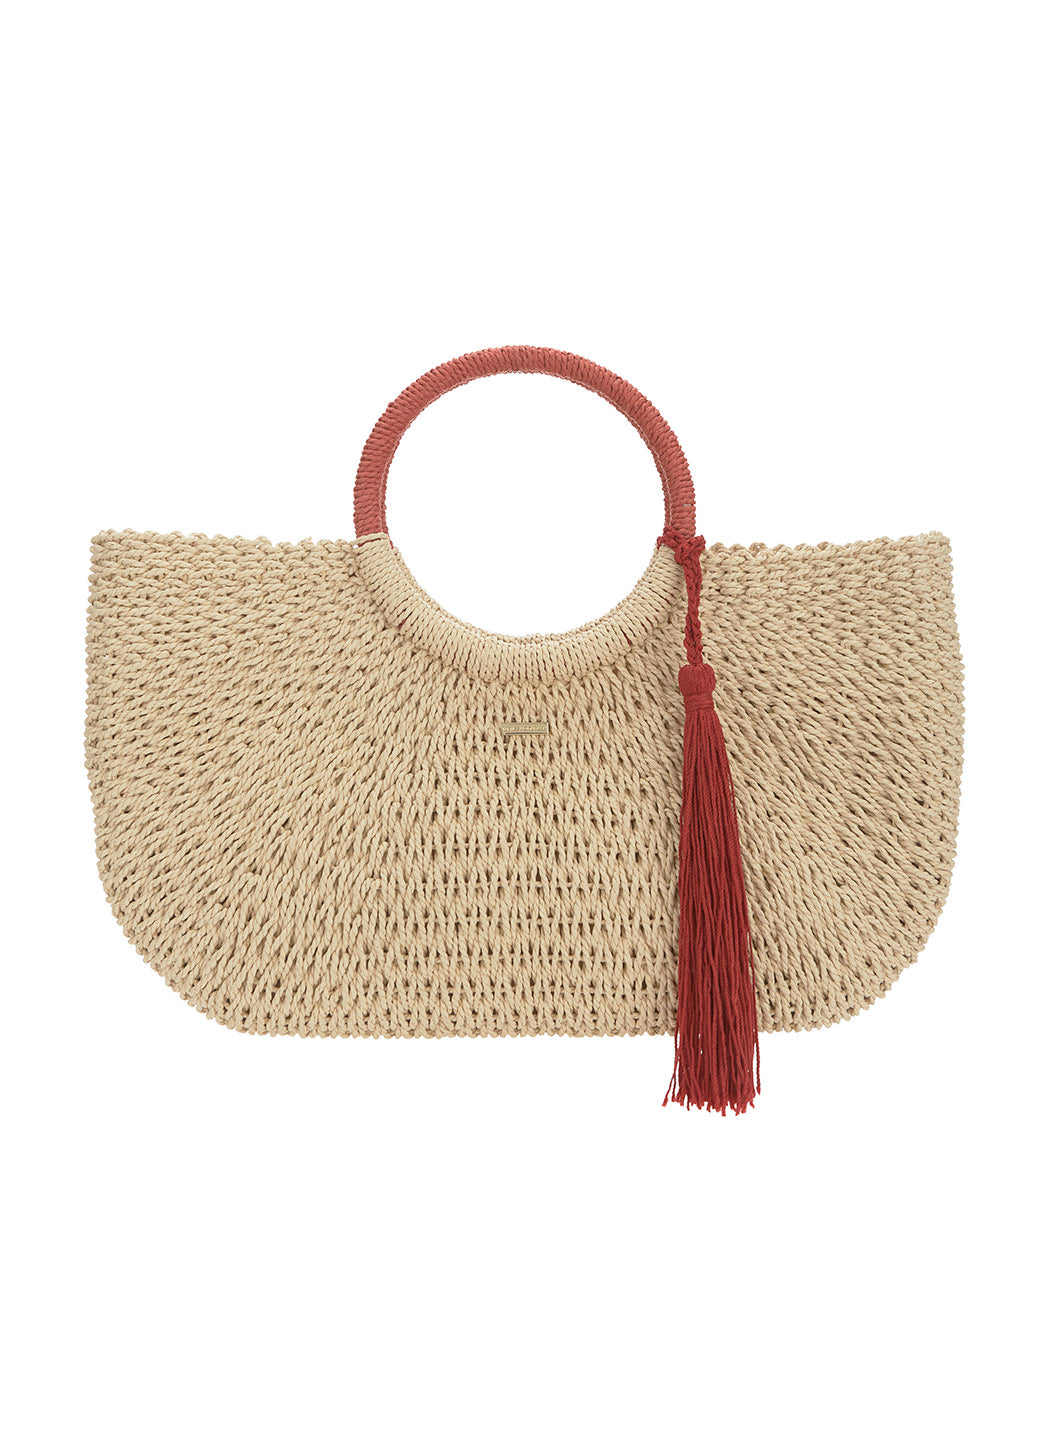 Sorrento Woven Basket Tassle Bag Natural Cinnamon